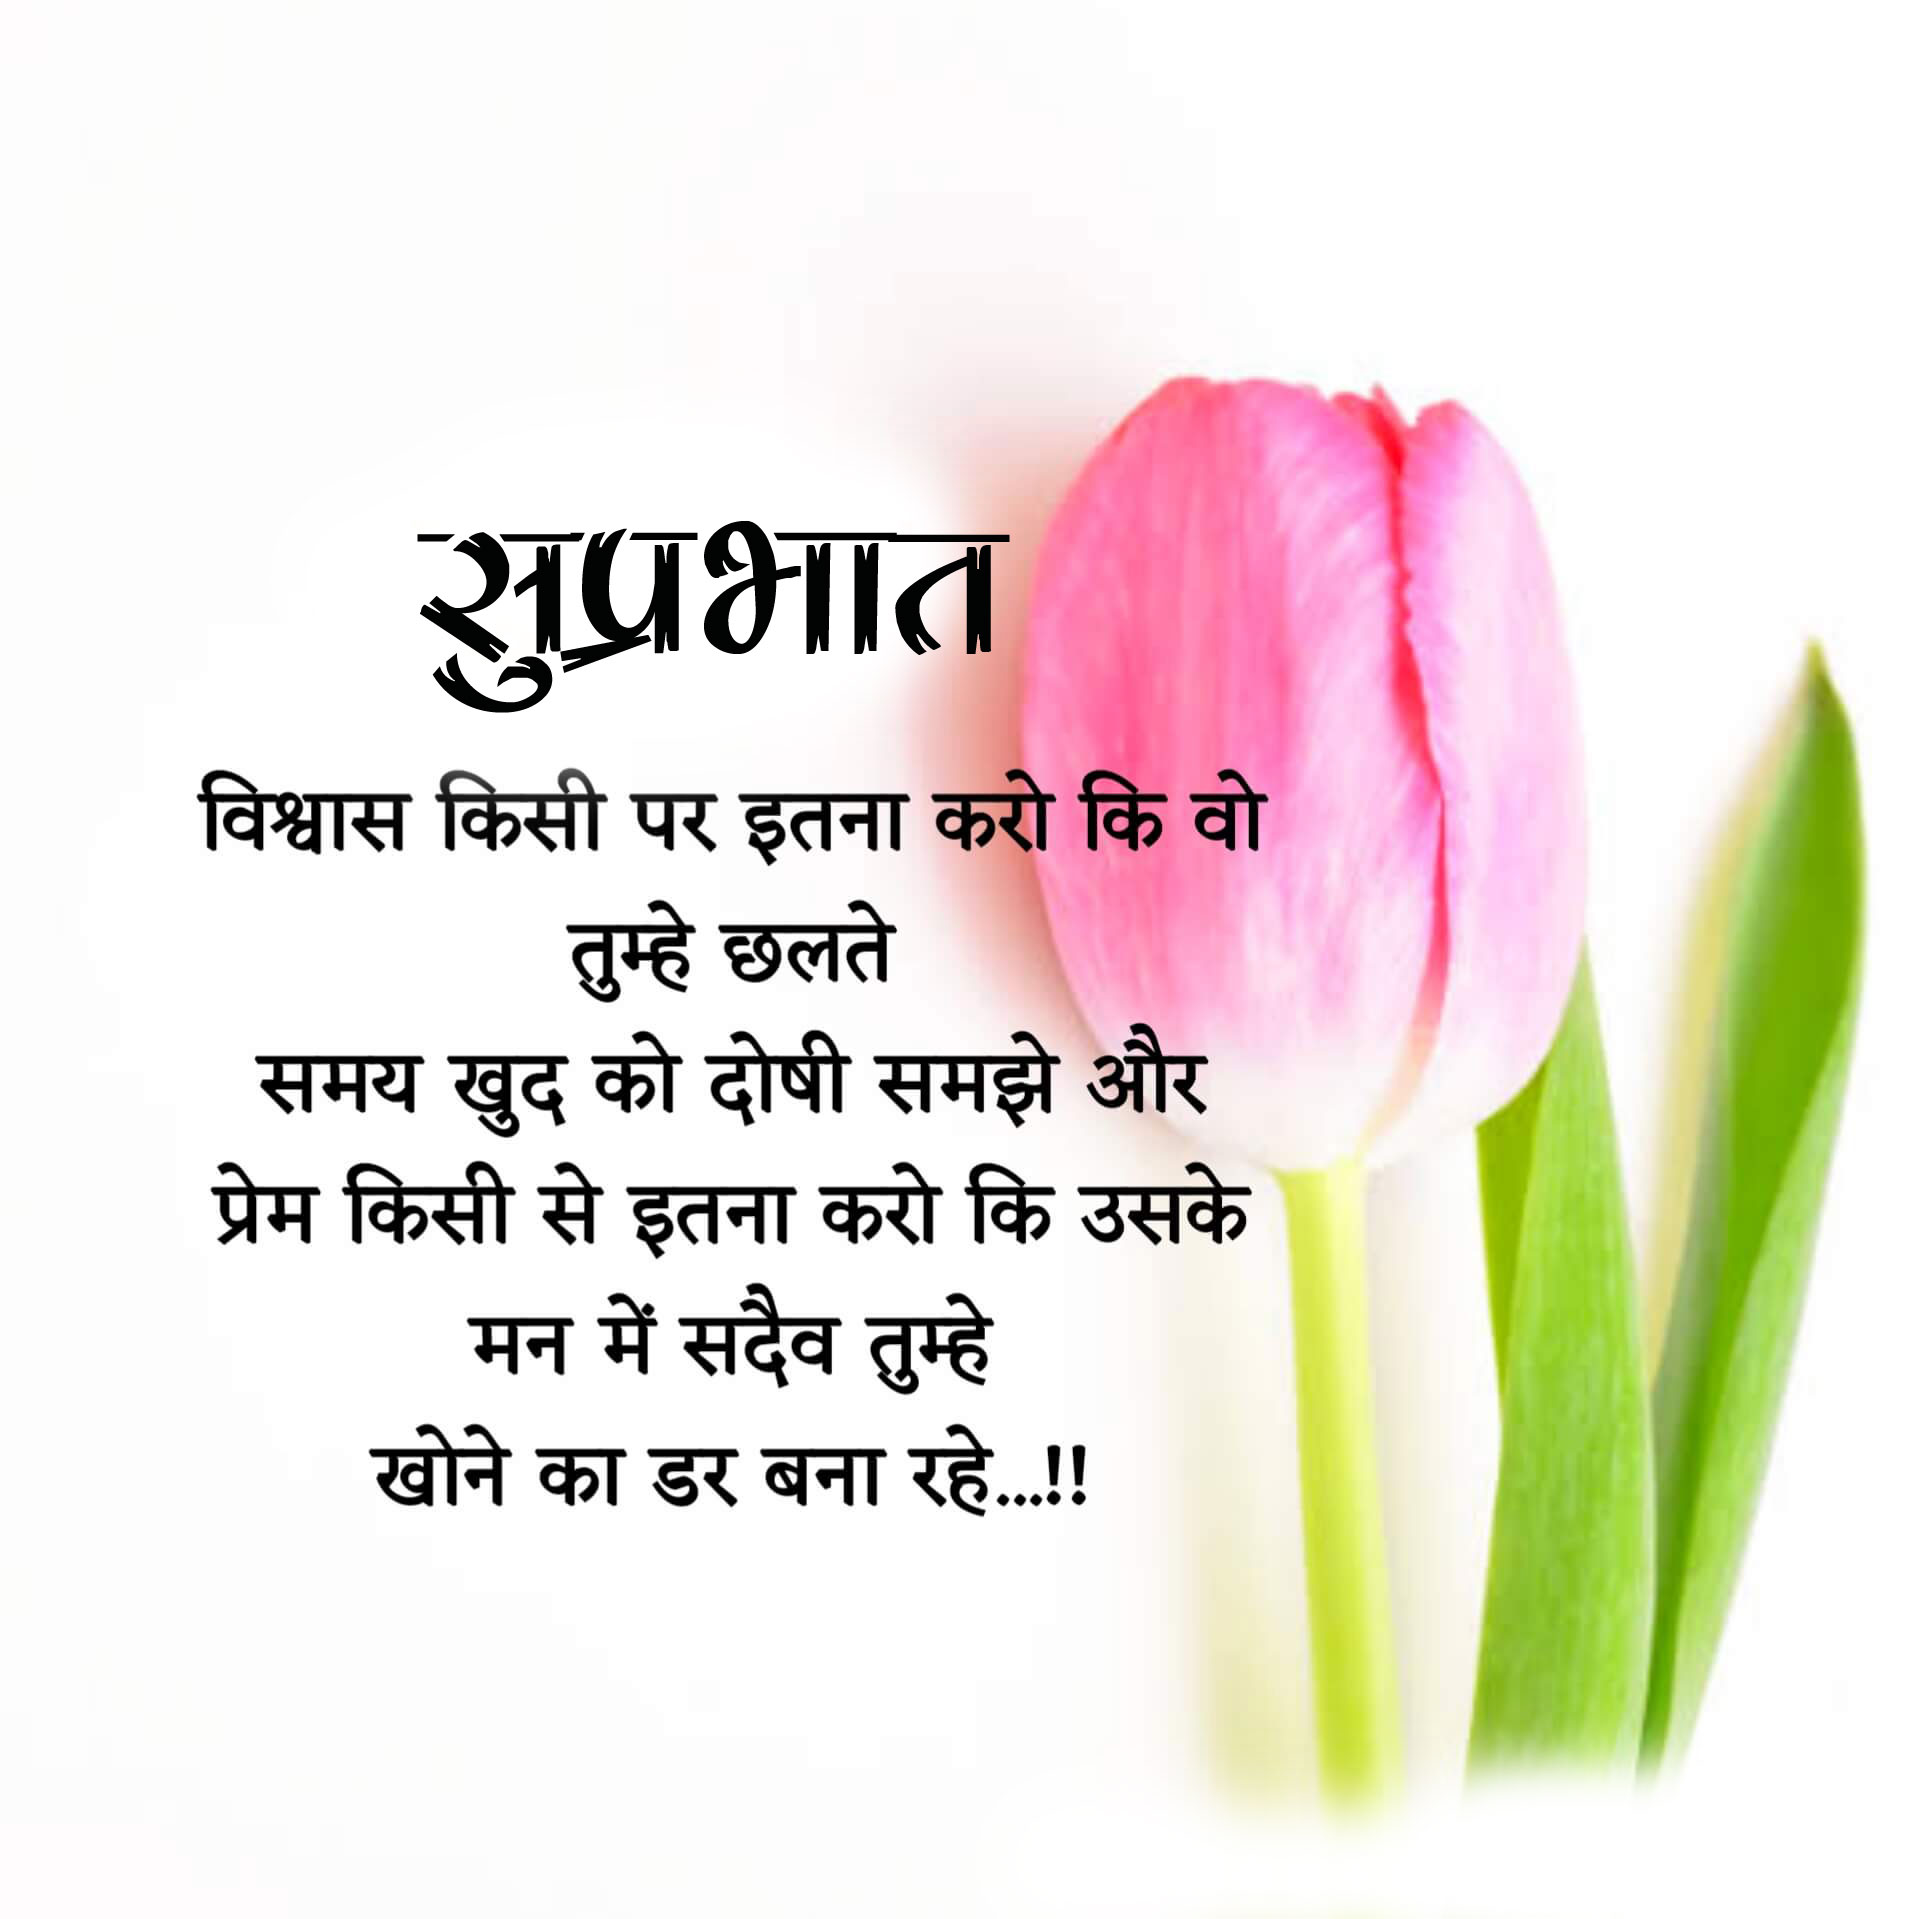 New Beautiful Suprabhat Images pictures free hd 3